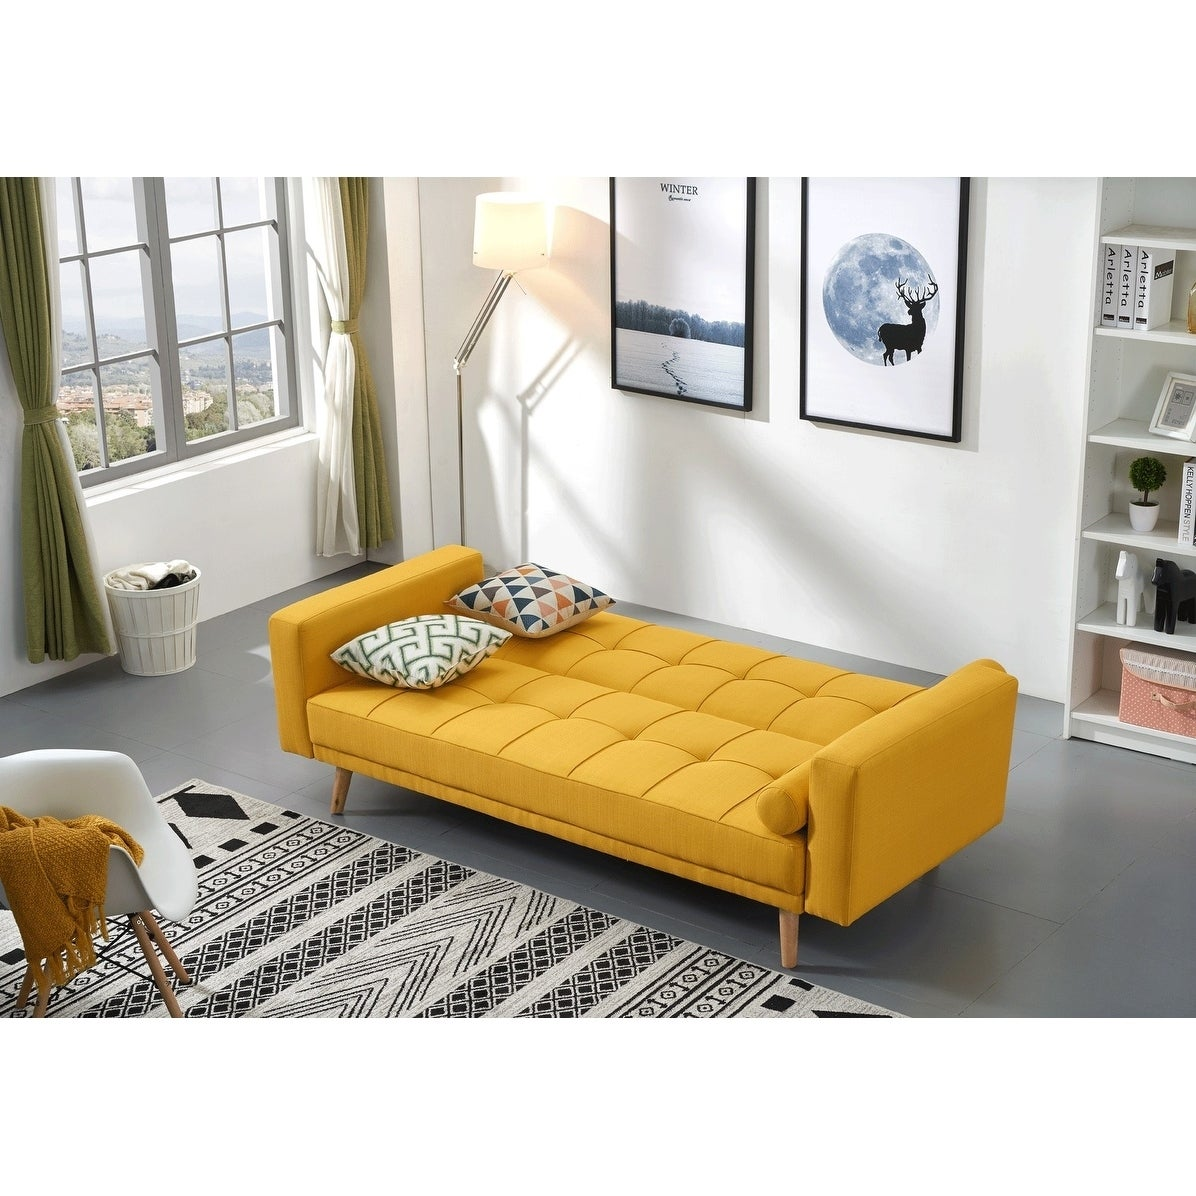 Luca Home Alex Yellow Microfiber And Wood Tufted Scandinavian Style Sofa Bed Free Shipping Today 26283597